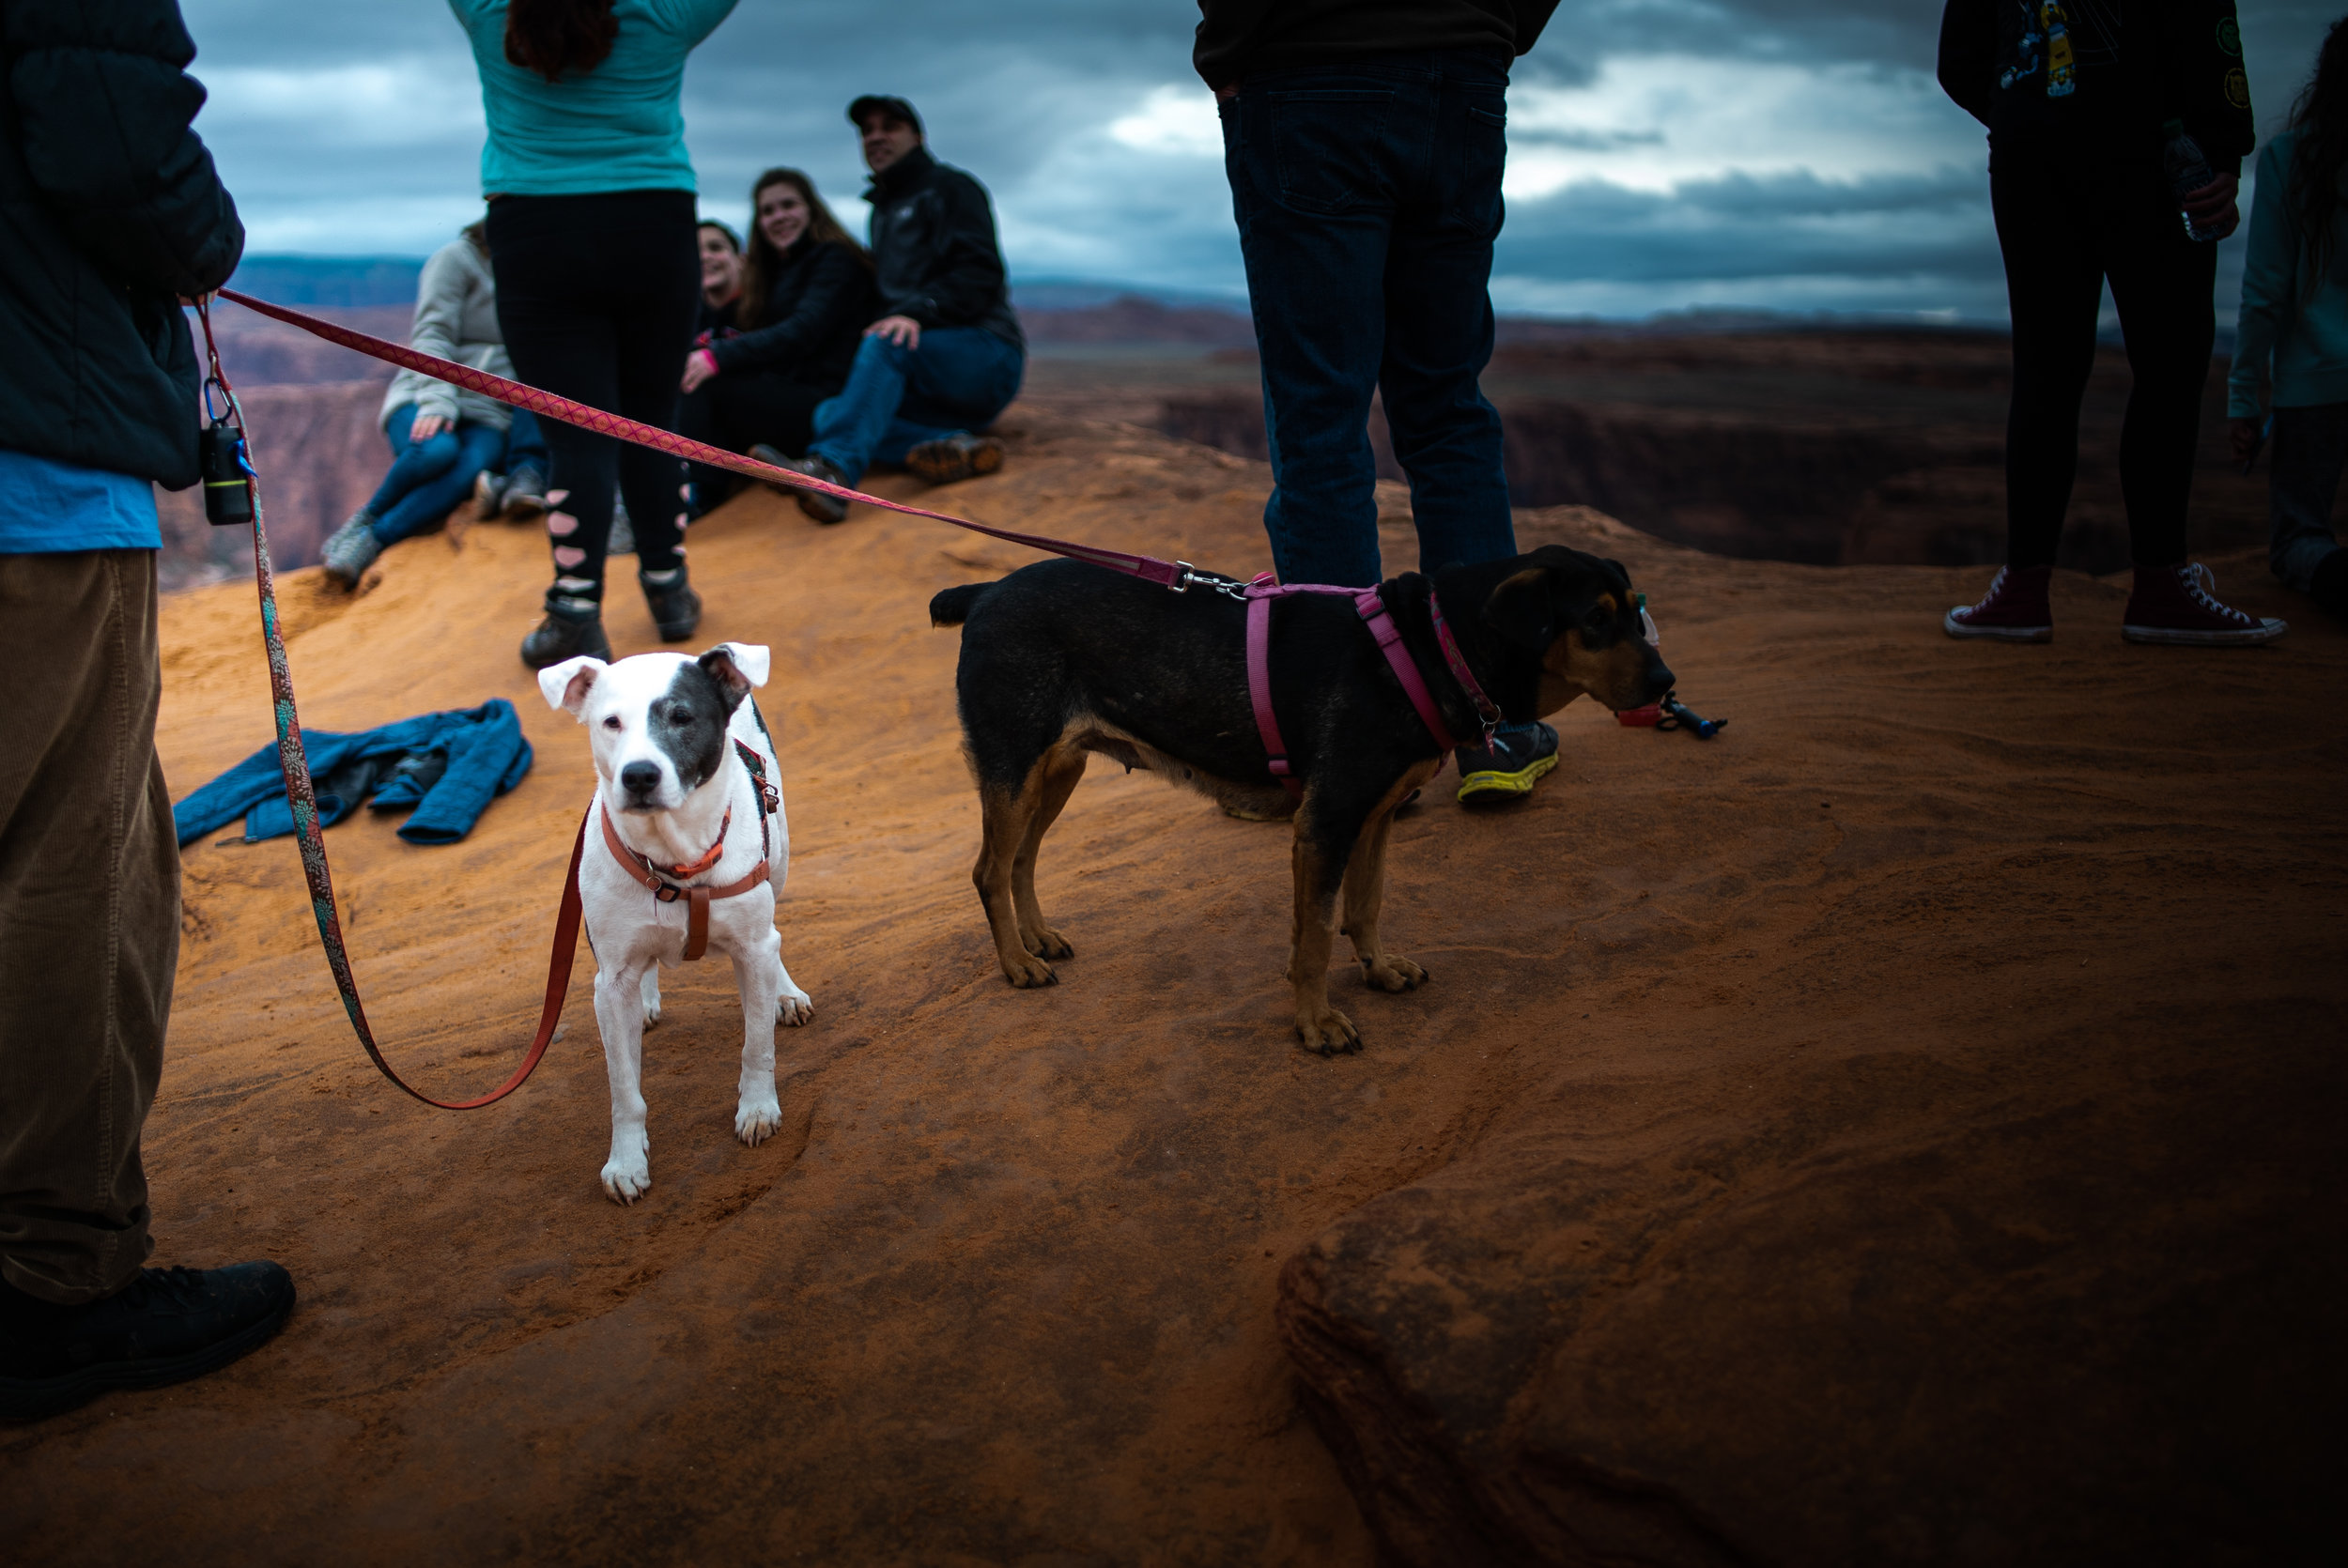 Pets are allowed at Horseshoe Bend, which I found strange.